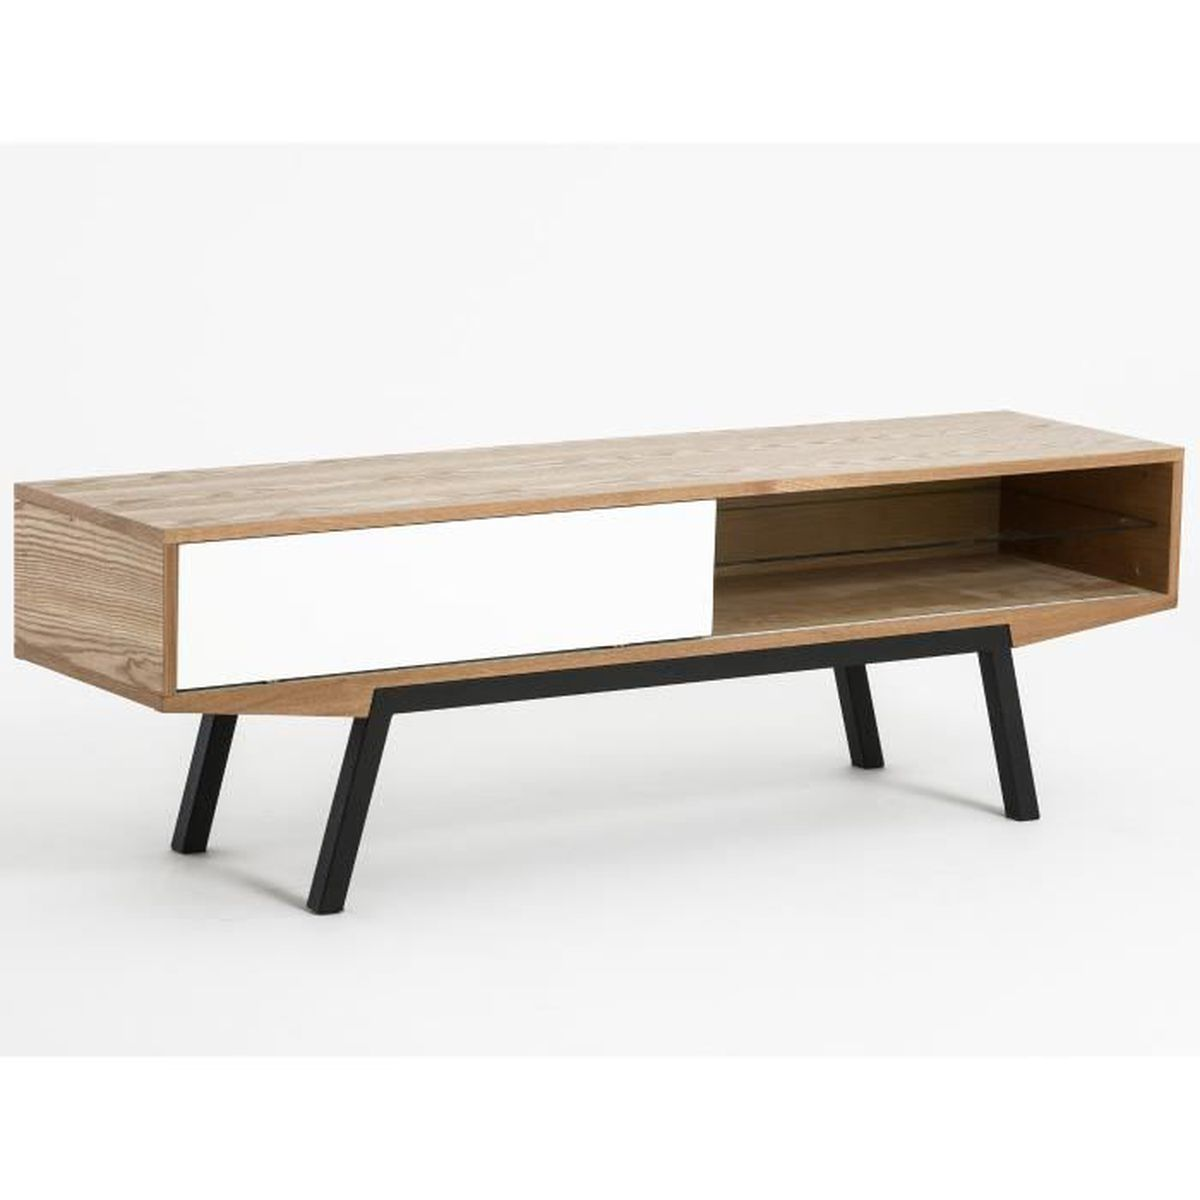 meuble tv design scandinave artat fr ne et blanc 160 cm achat vente meuble tv meuble tv. Black Bedroom Furniture Sets. Home Design Ideas